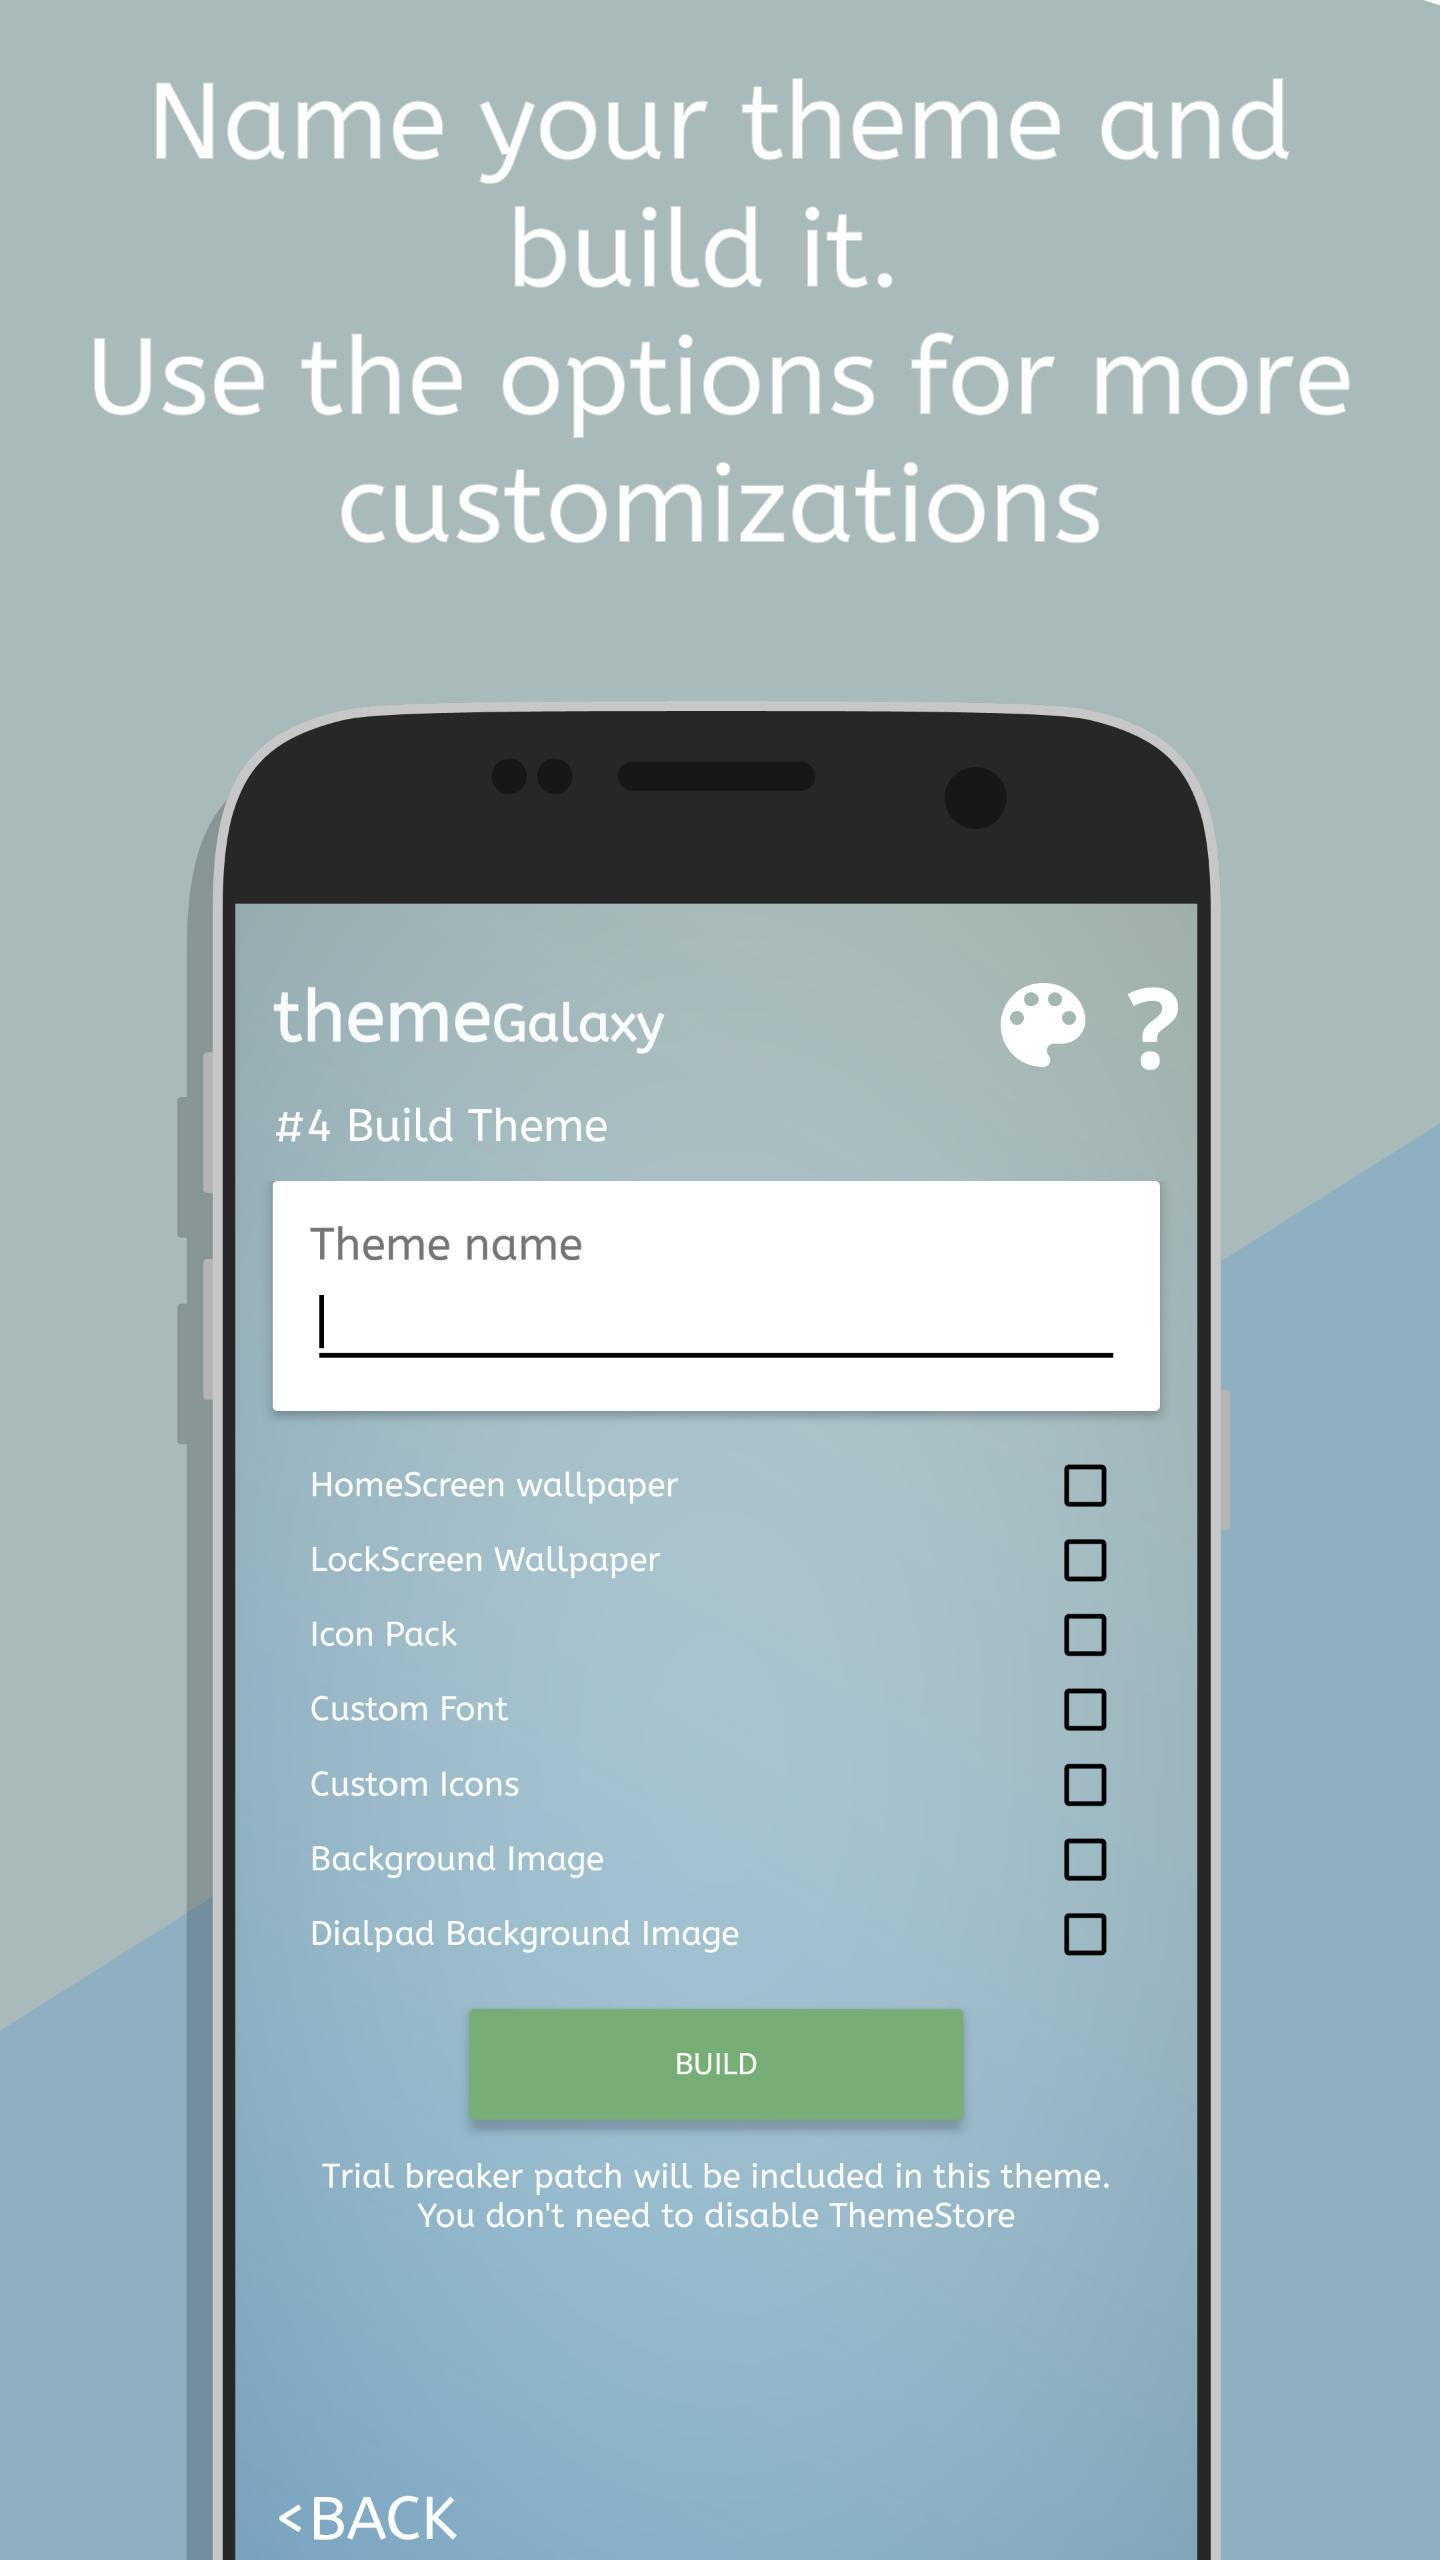 theme Galaxy - Theme Maker for Samsung Galaxy for Android - APK Download